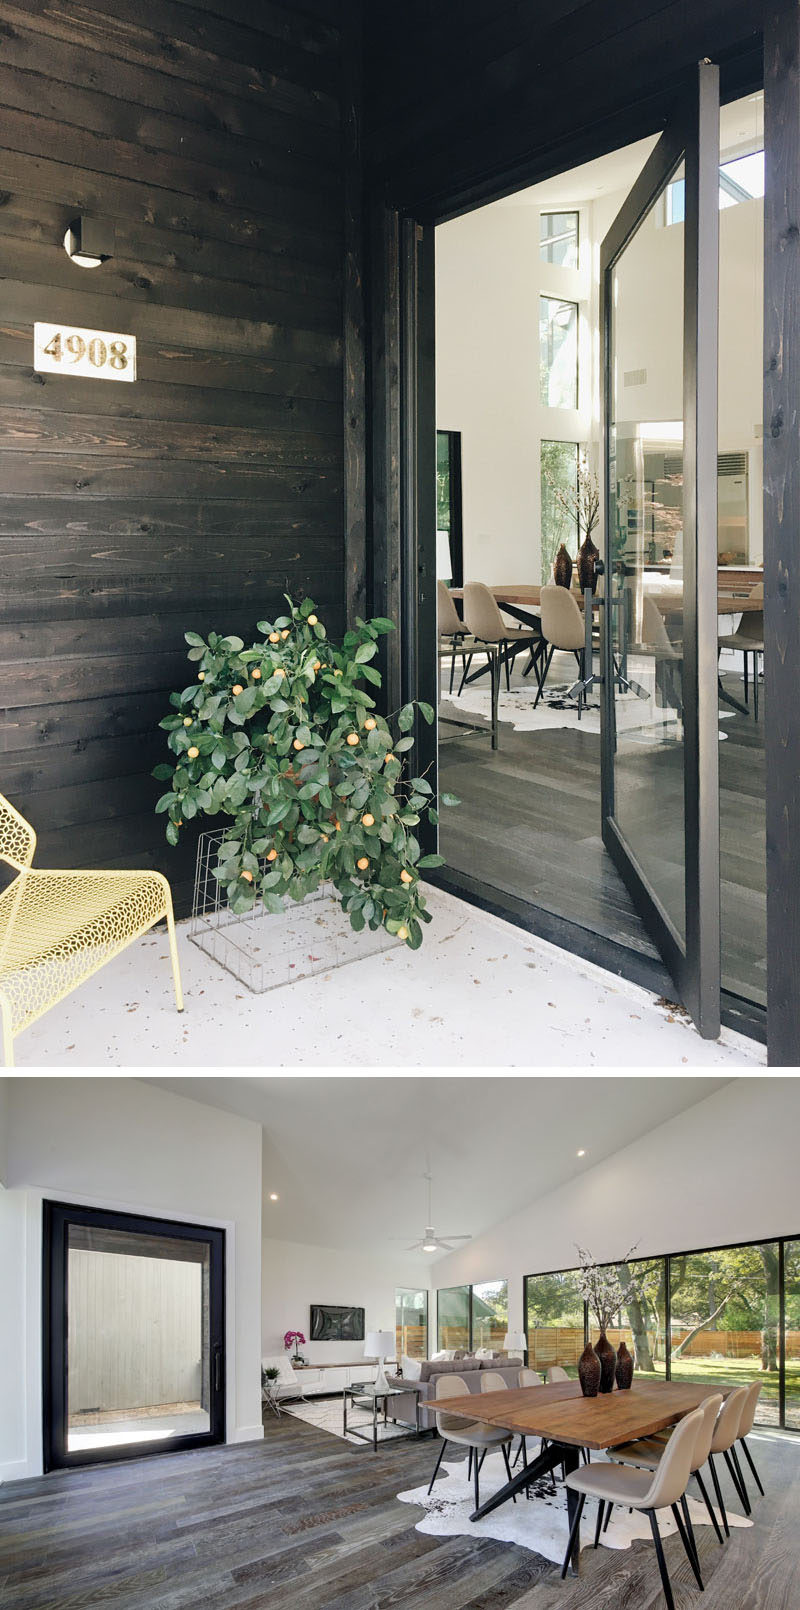 The covered entryway on this modern house leads to the front door, and instead of a more traditional solid wood door, the house has a large pivoting glass door, allowing guests to see into the home or the occupants to see out.